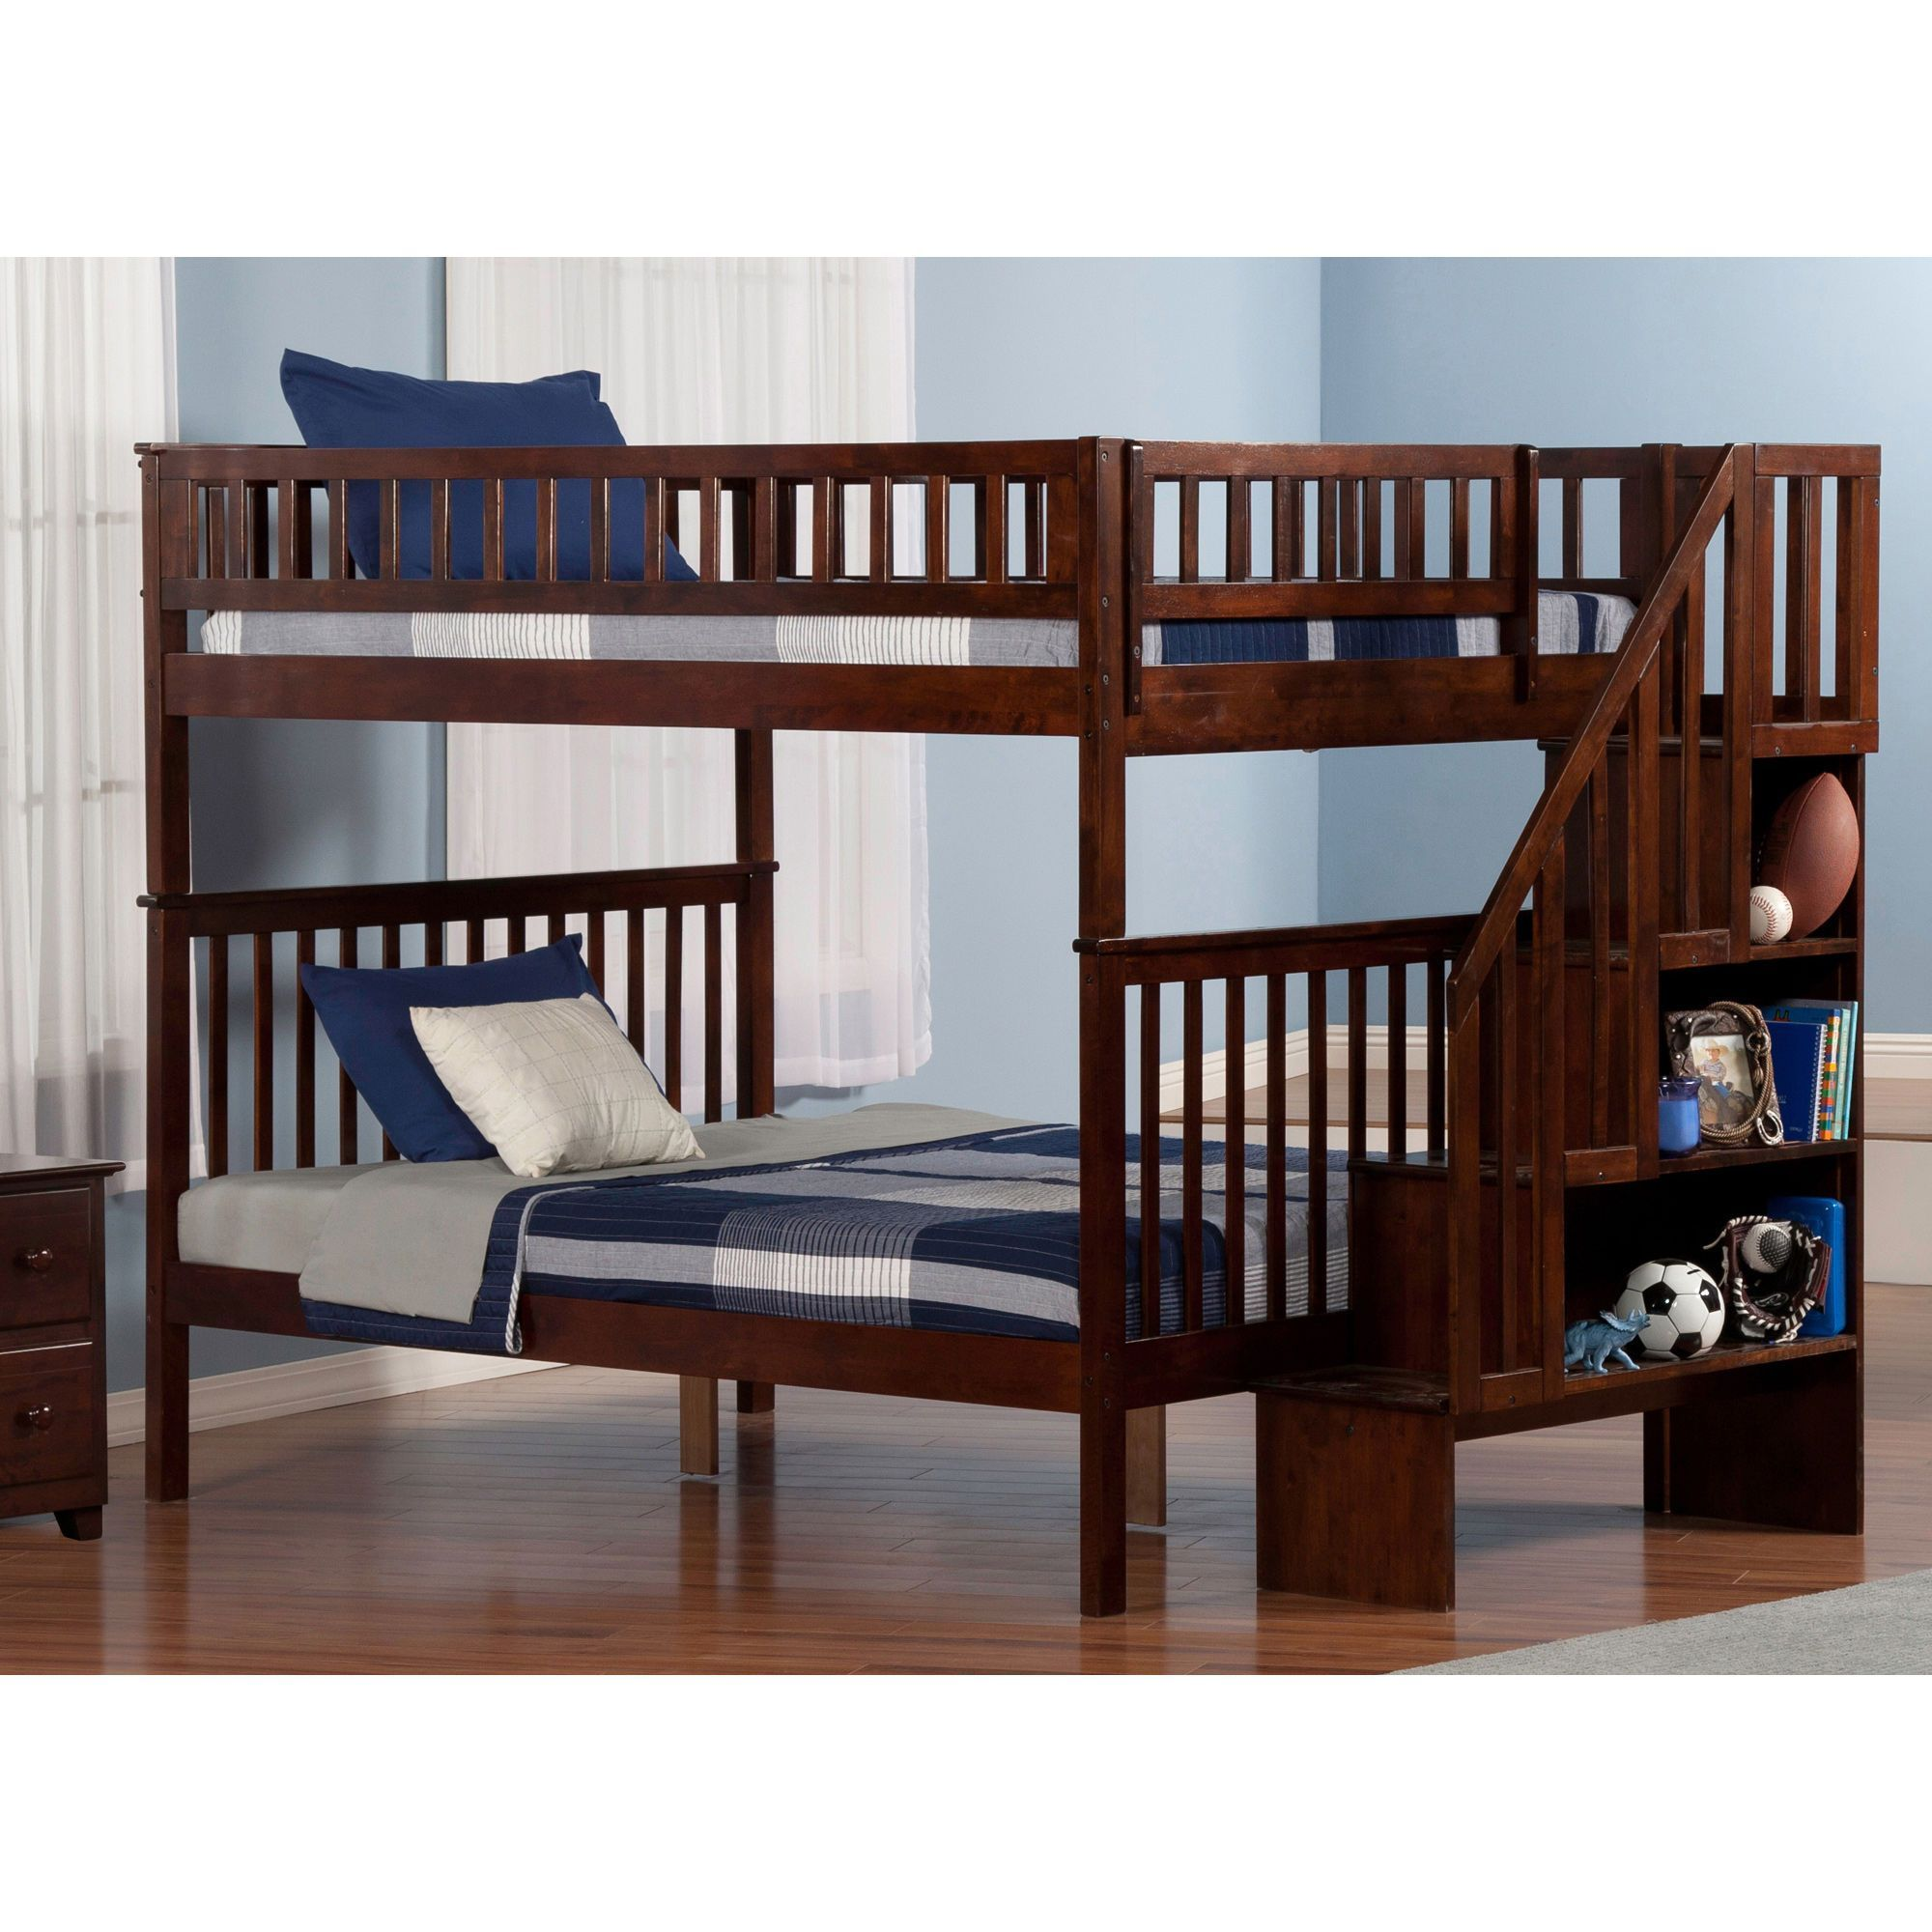 atlantic woodland staircase bunk bed full over full in walnut color